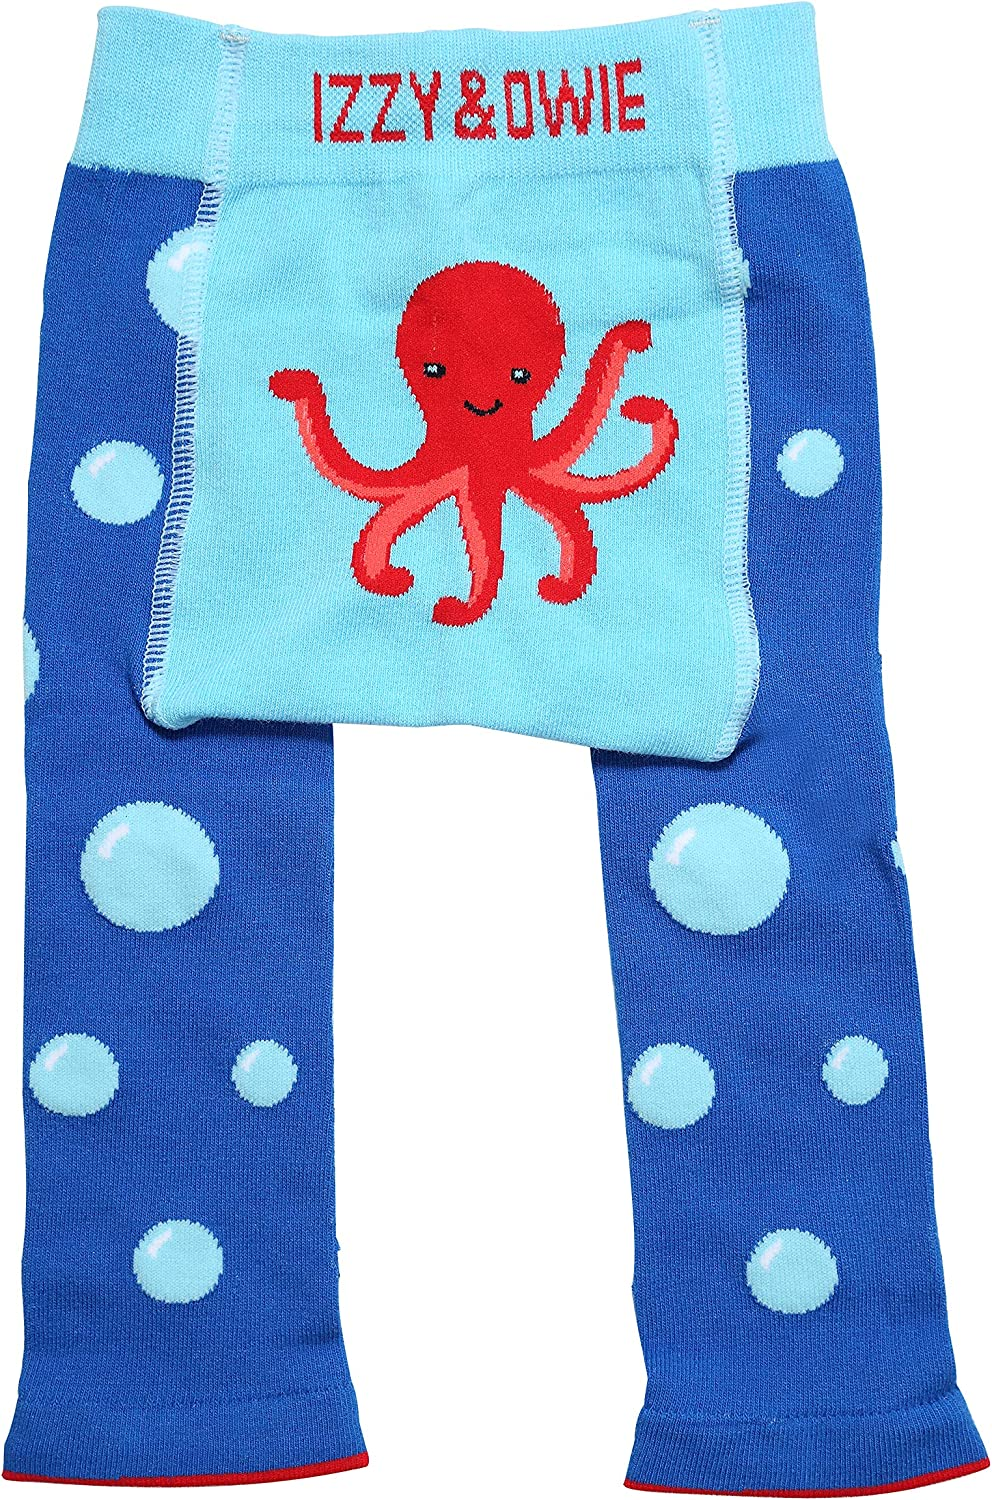 Pavilion Gift Company Baby Blue Fashionable New York Mall Months Stretchy 12-24